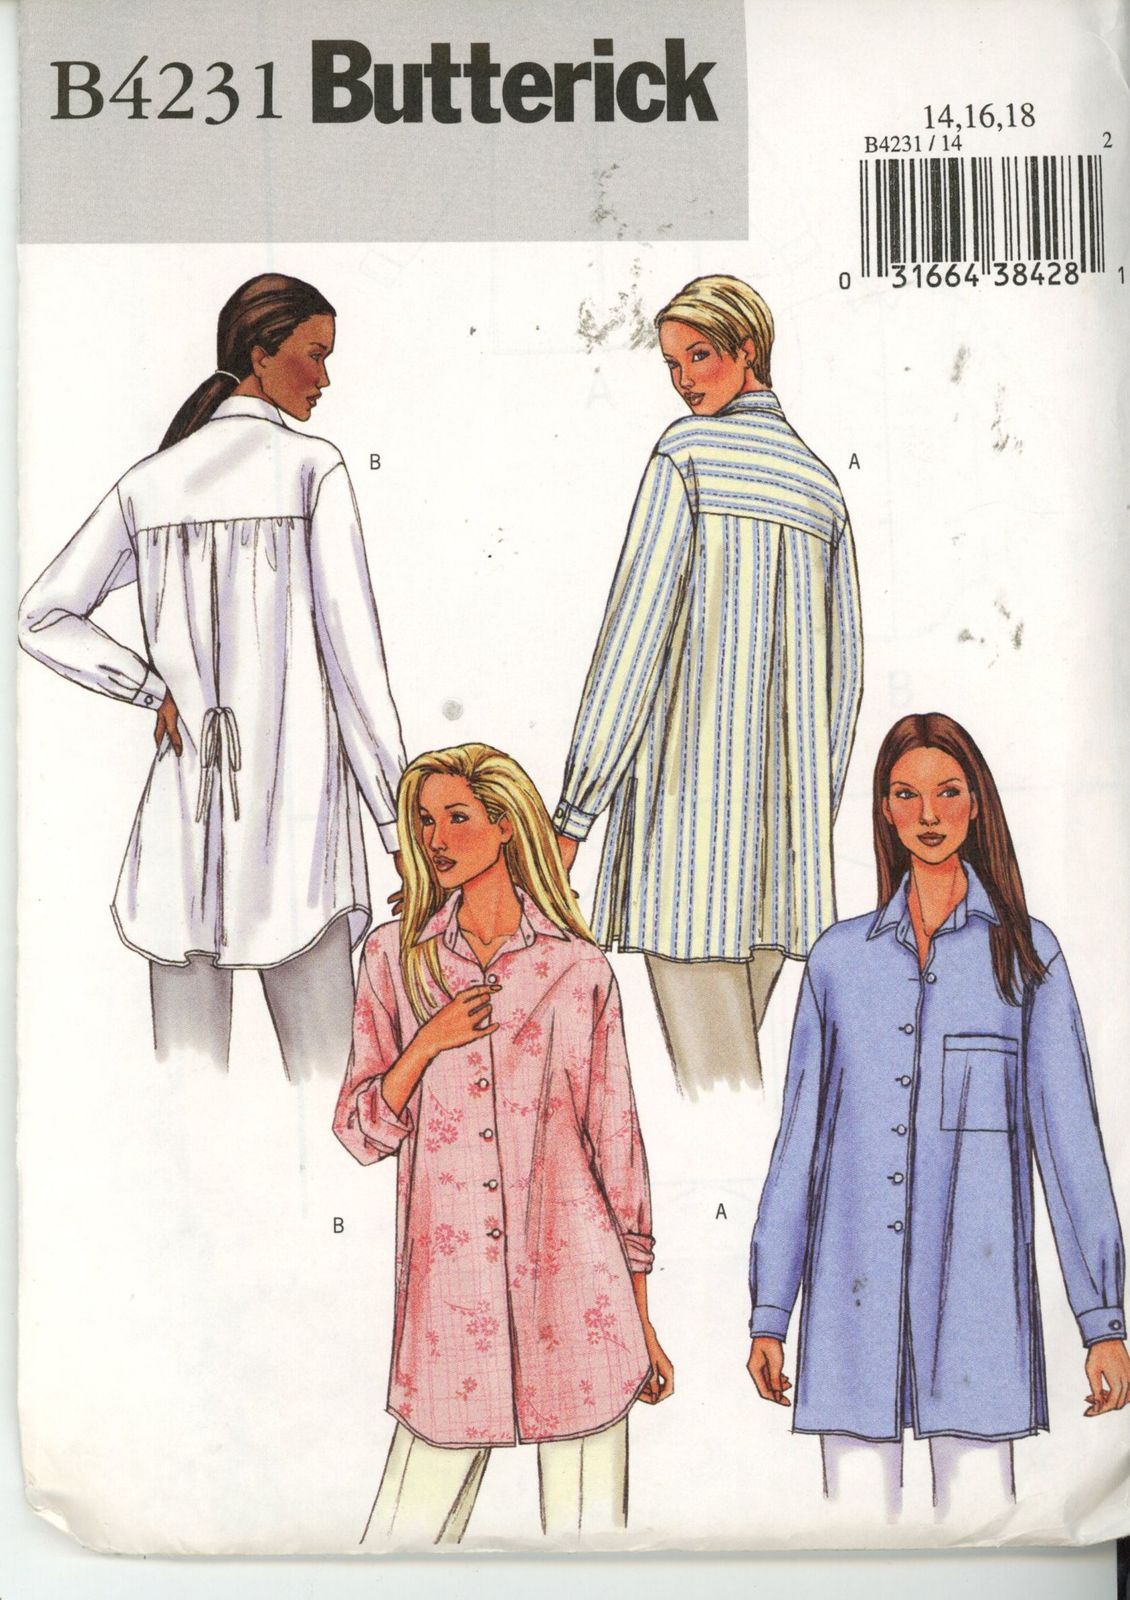 Primary image for Butterick 4231 Misses Shirt - Size 14-16-18 UNCUT